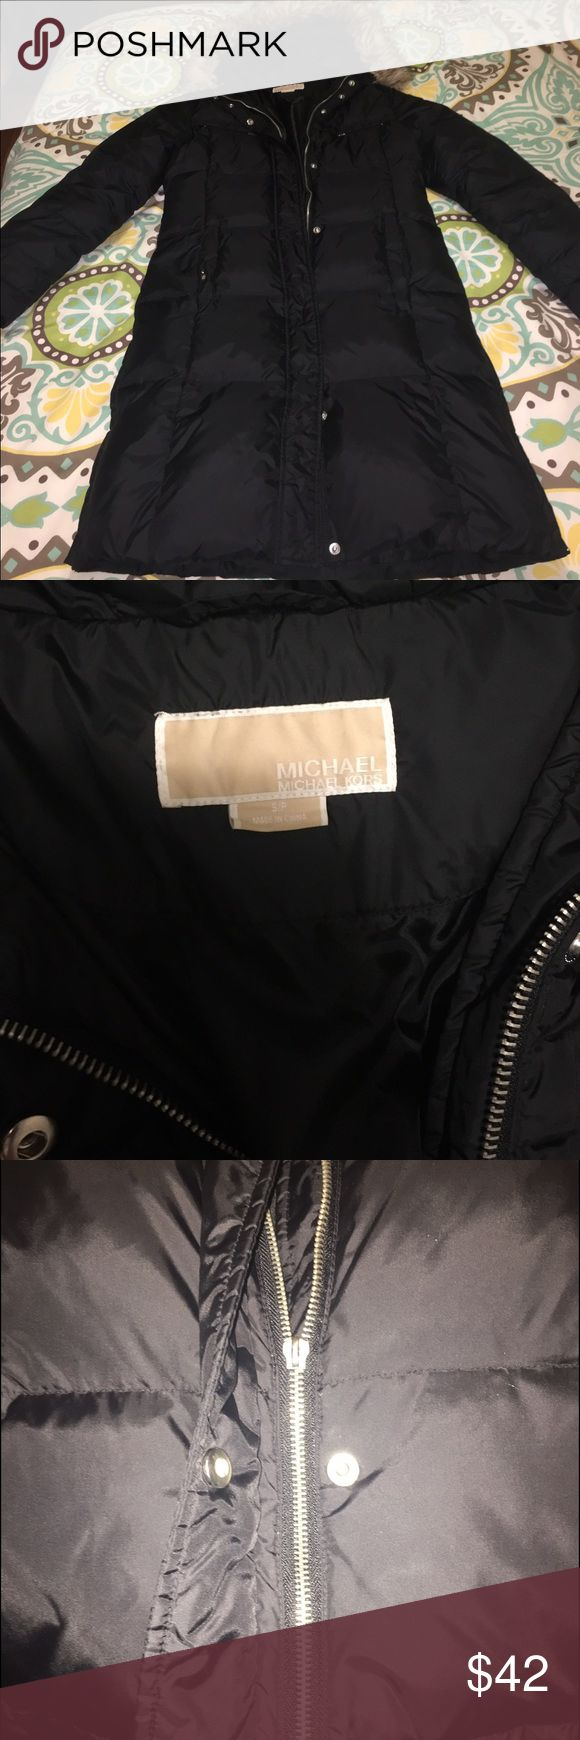 Michael Kors puffer coat Black Michael by Michael Kors down puffer with fur trim hood. Excellent condition, however in pic 2, the buckle on the top part of the zipper fell off but should be easily fixed... don't need this jacket anymore bc I'm in California MICHAEL Michael Kors Jackets & Coats Puffers